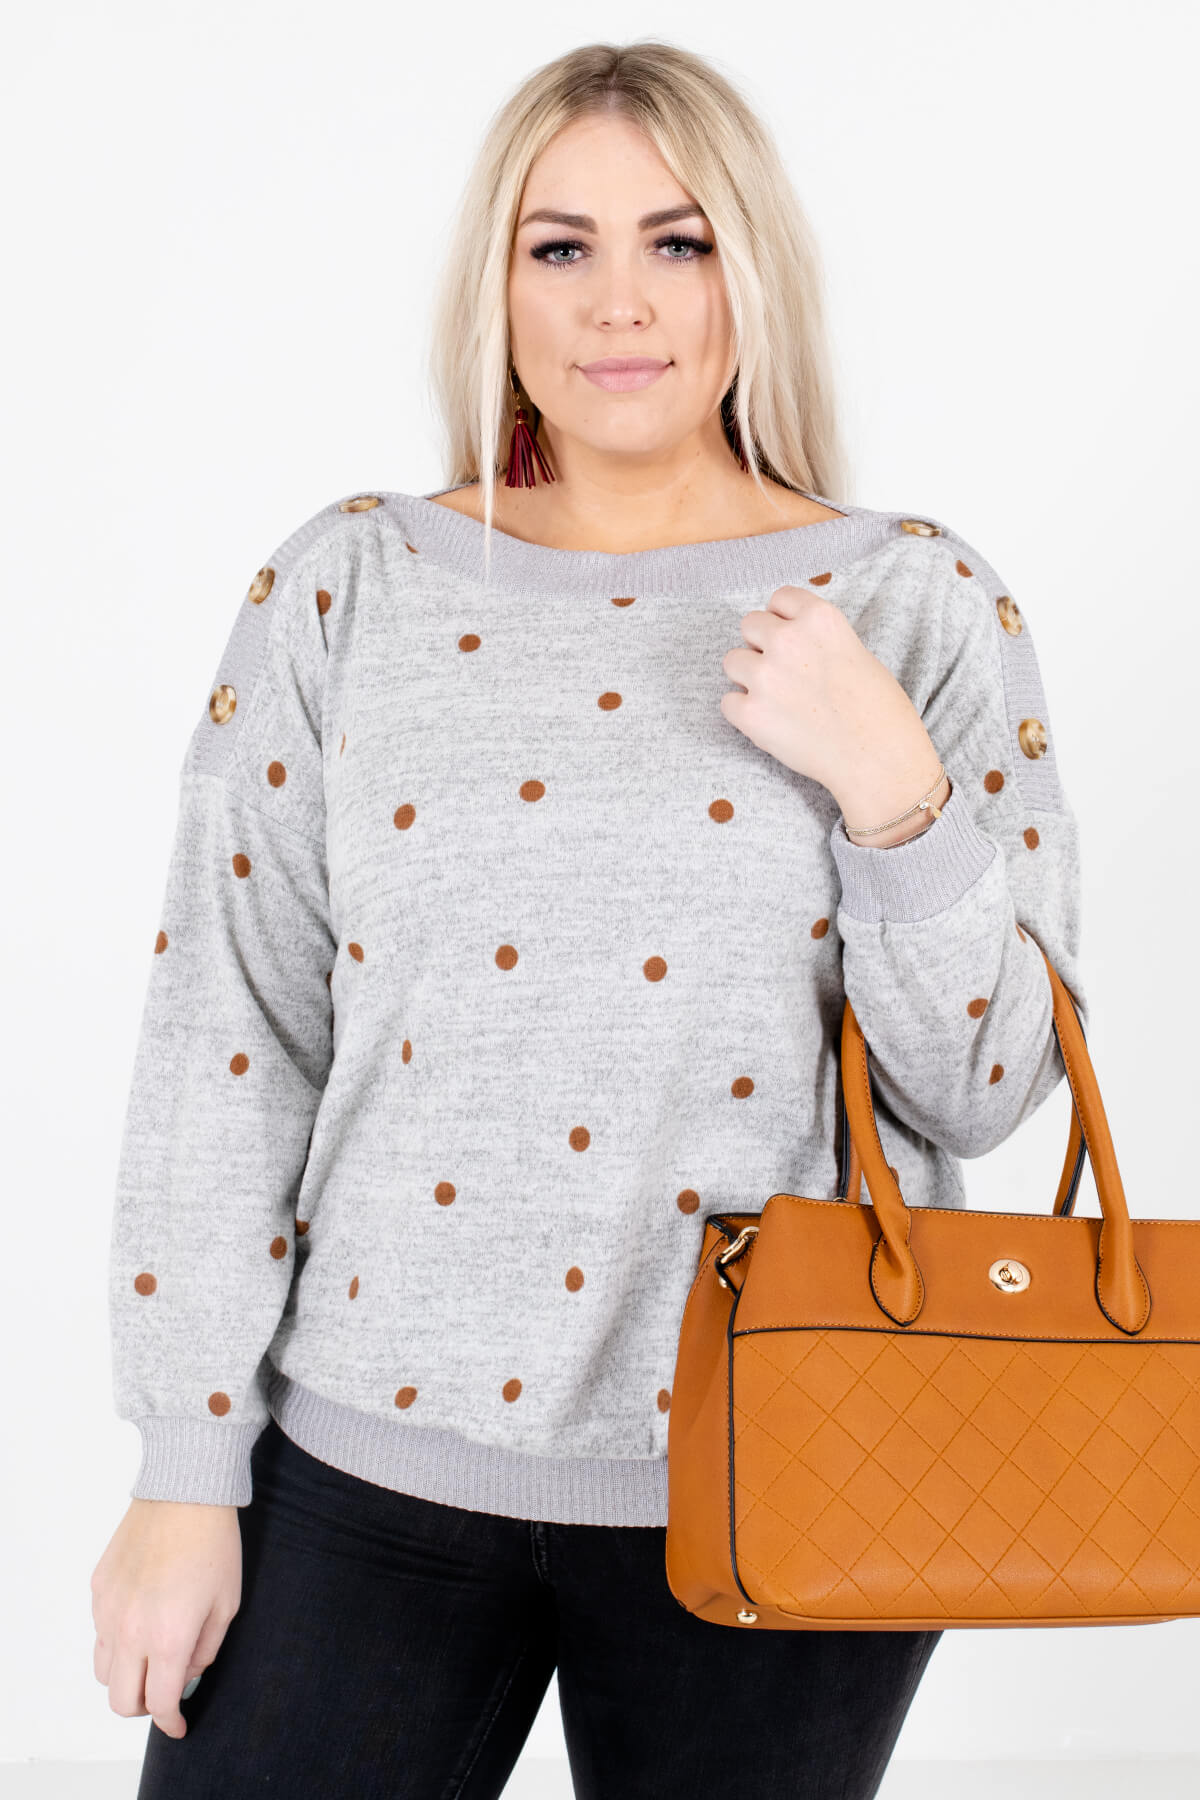 Heather Gray and Rust Polka Dot Patterned Boutique Sweaters for Women